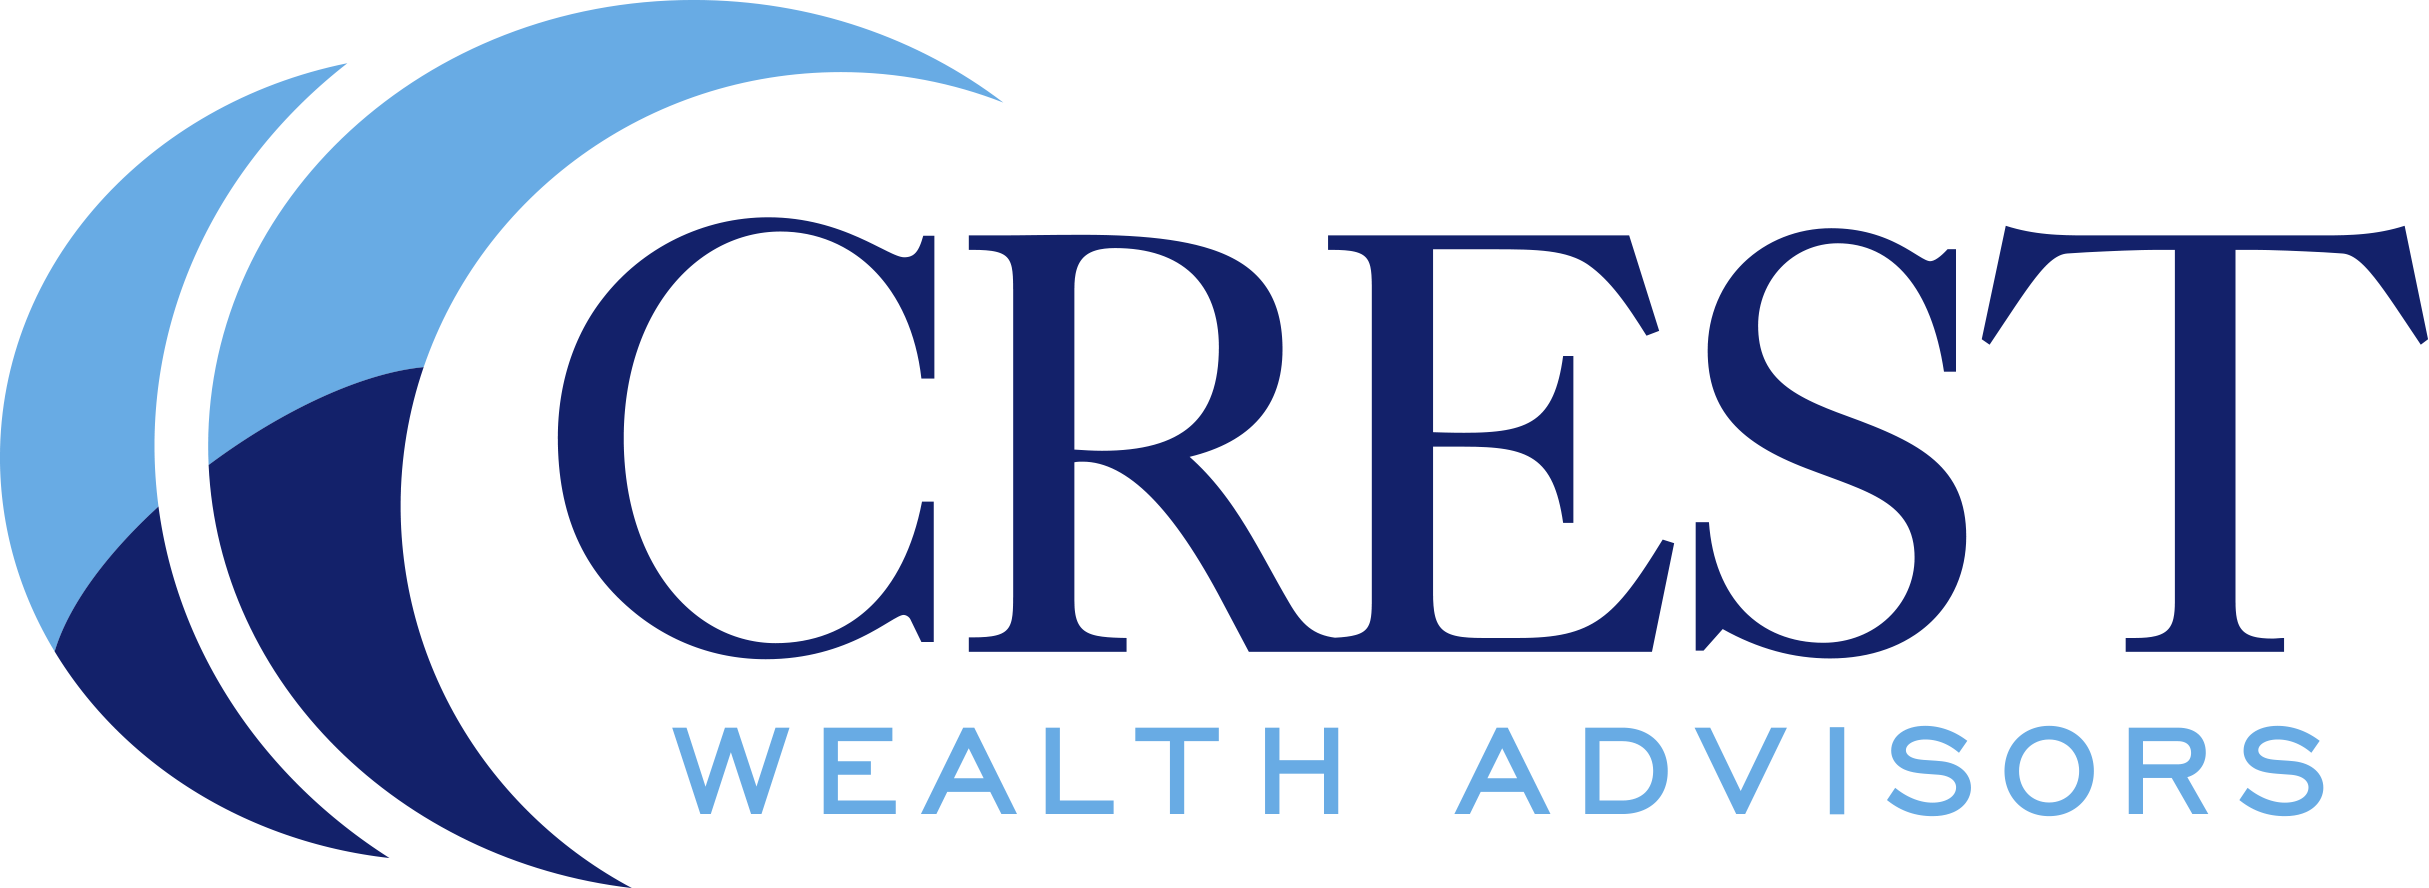 Crest Wealth Advisors